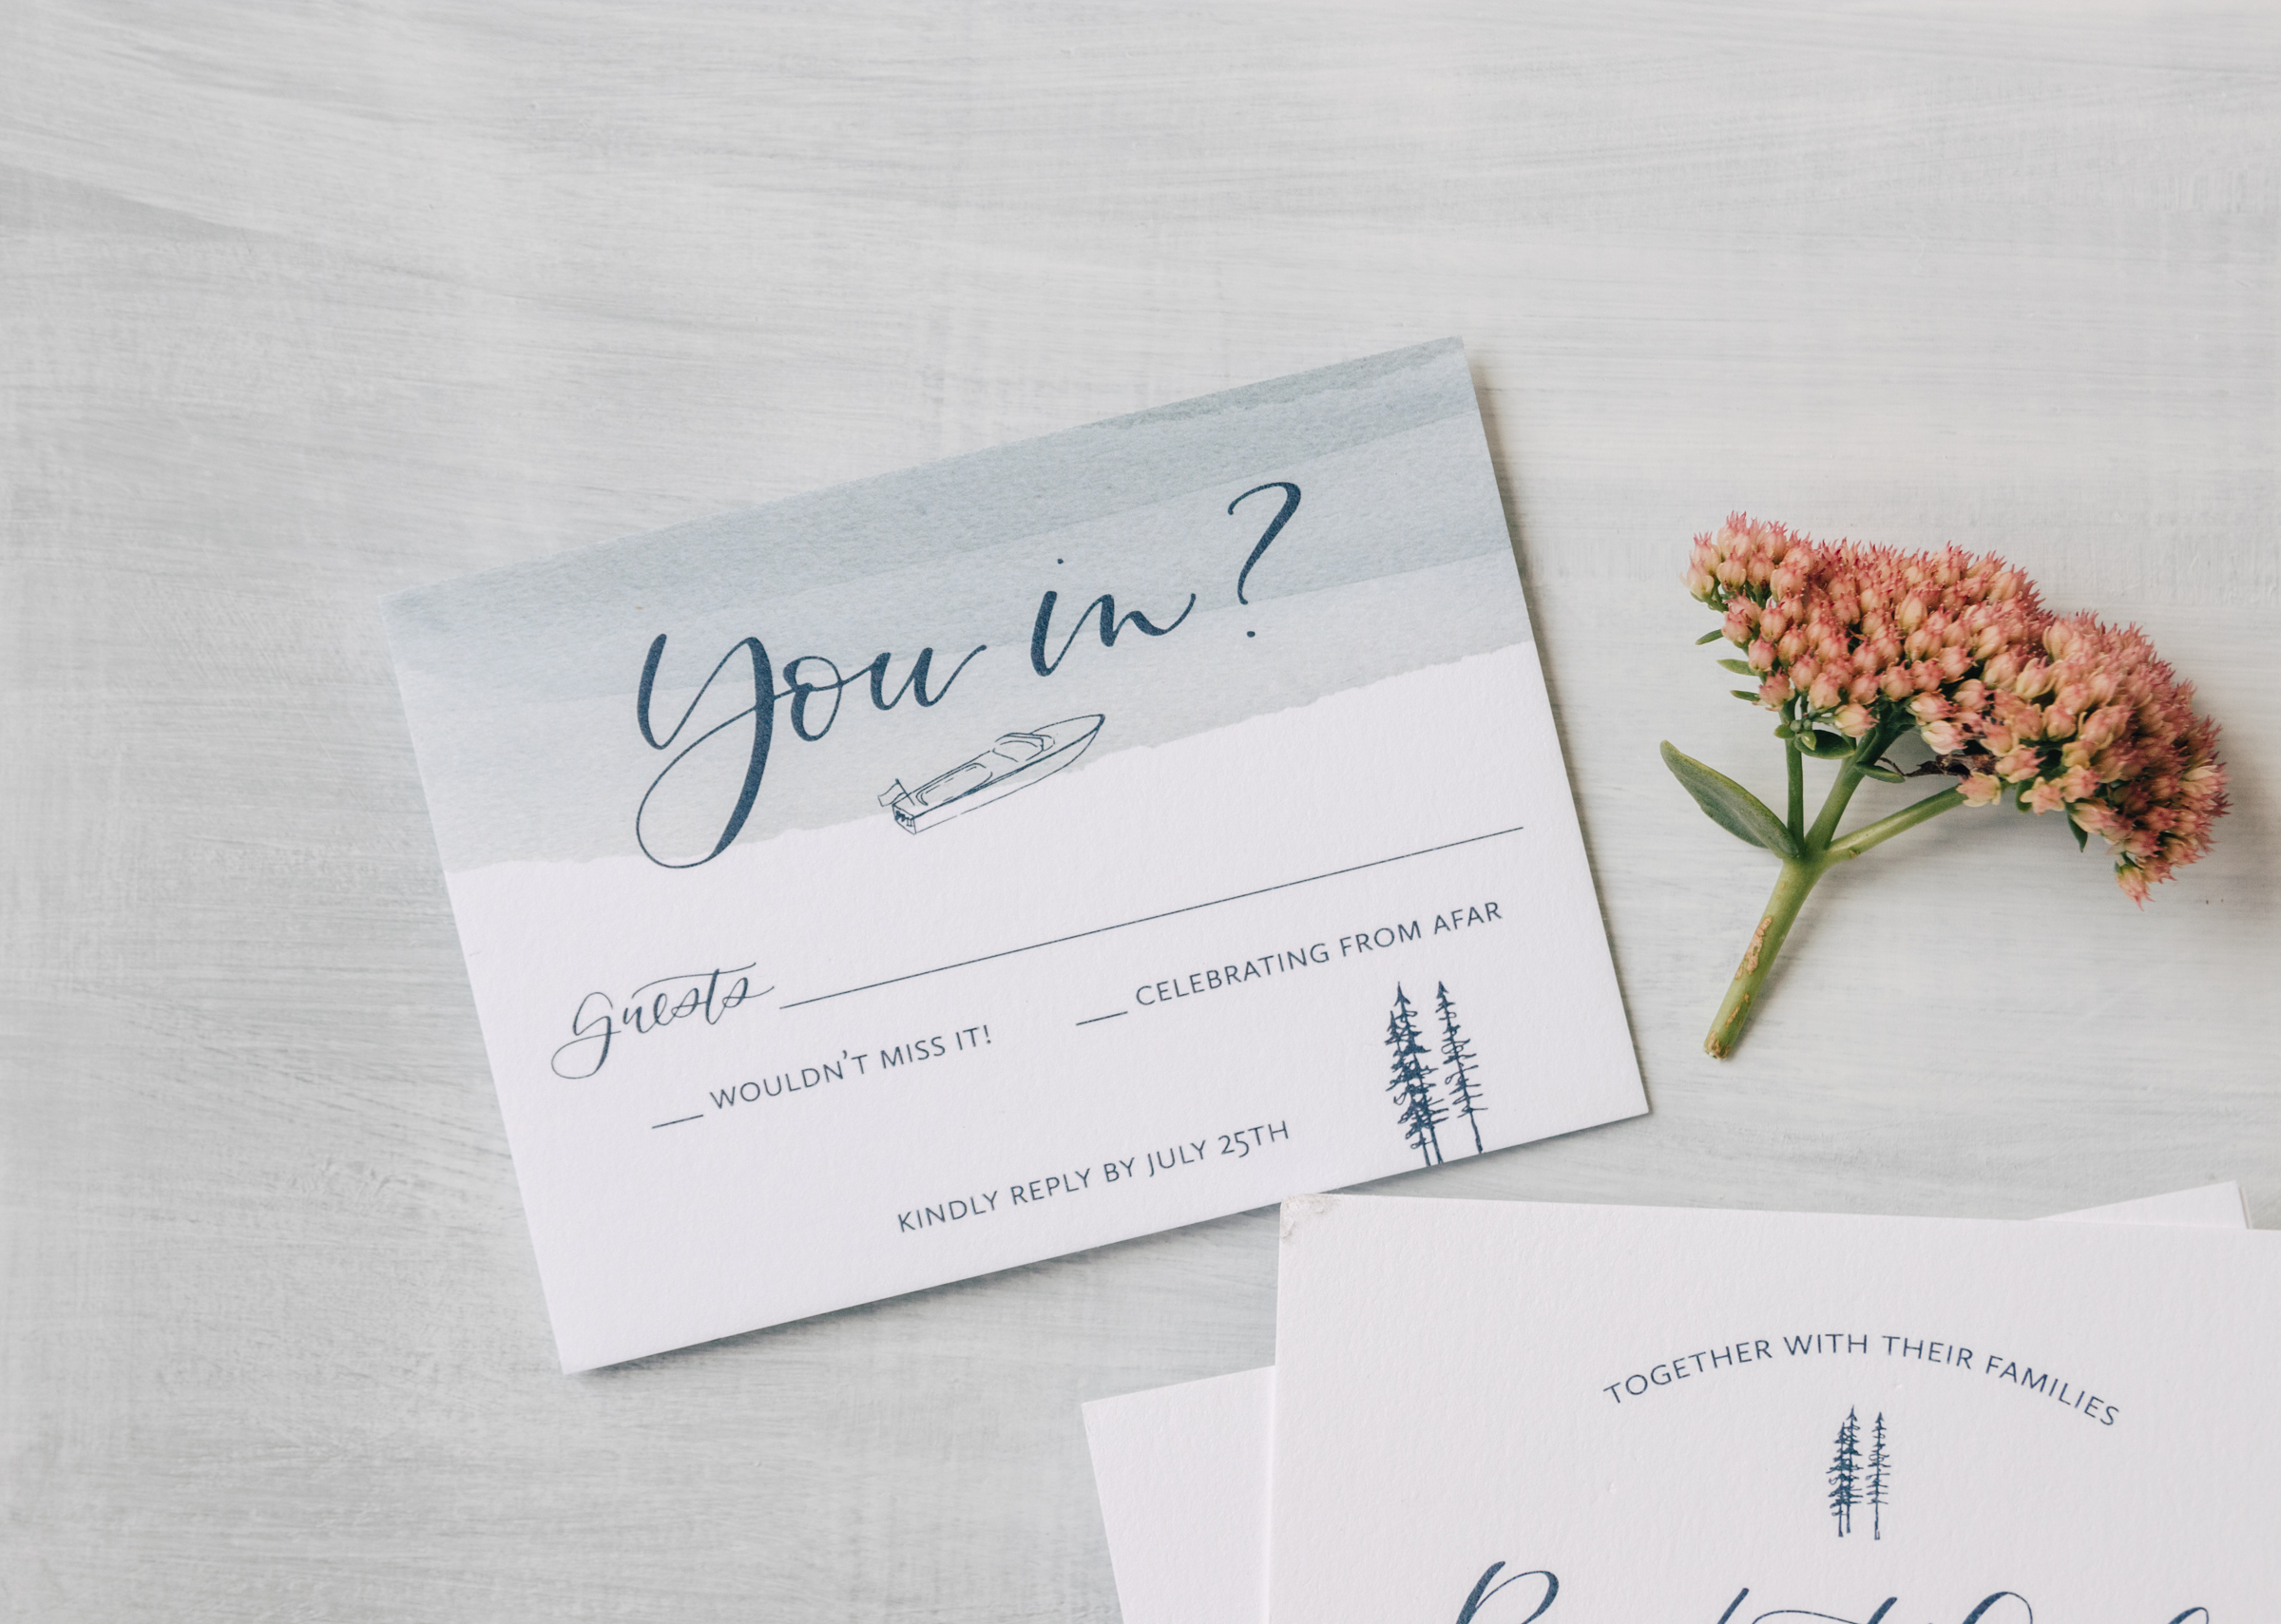 Unique RSVP Card Wording with Watercolor and Illustration